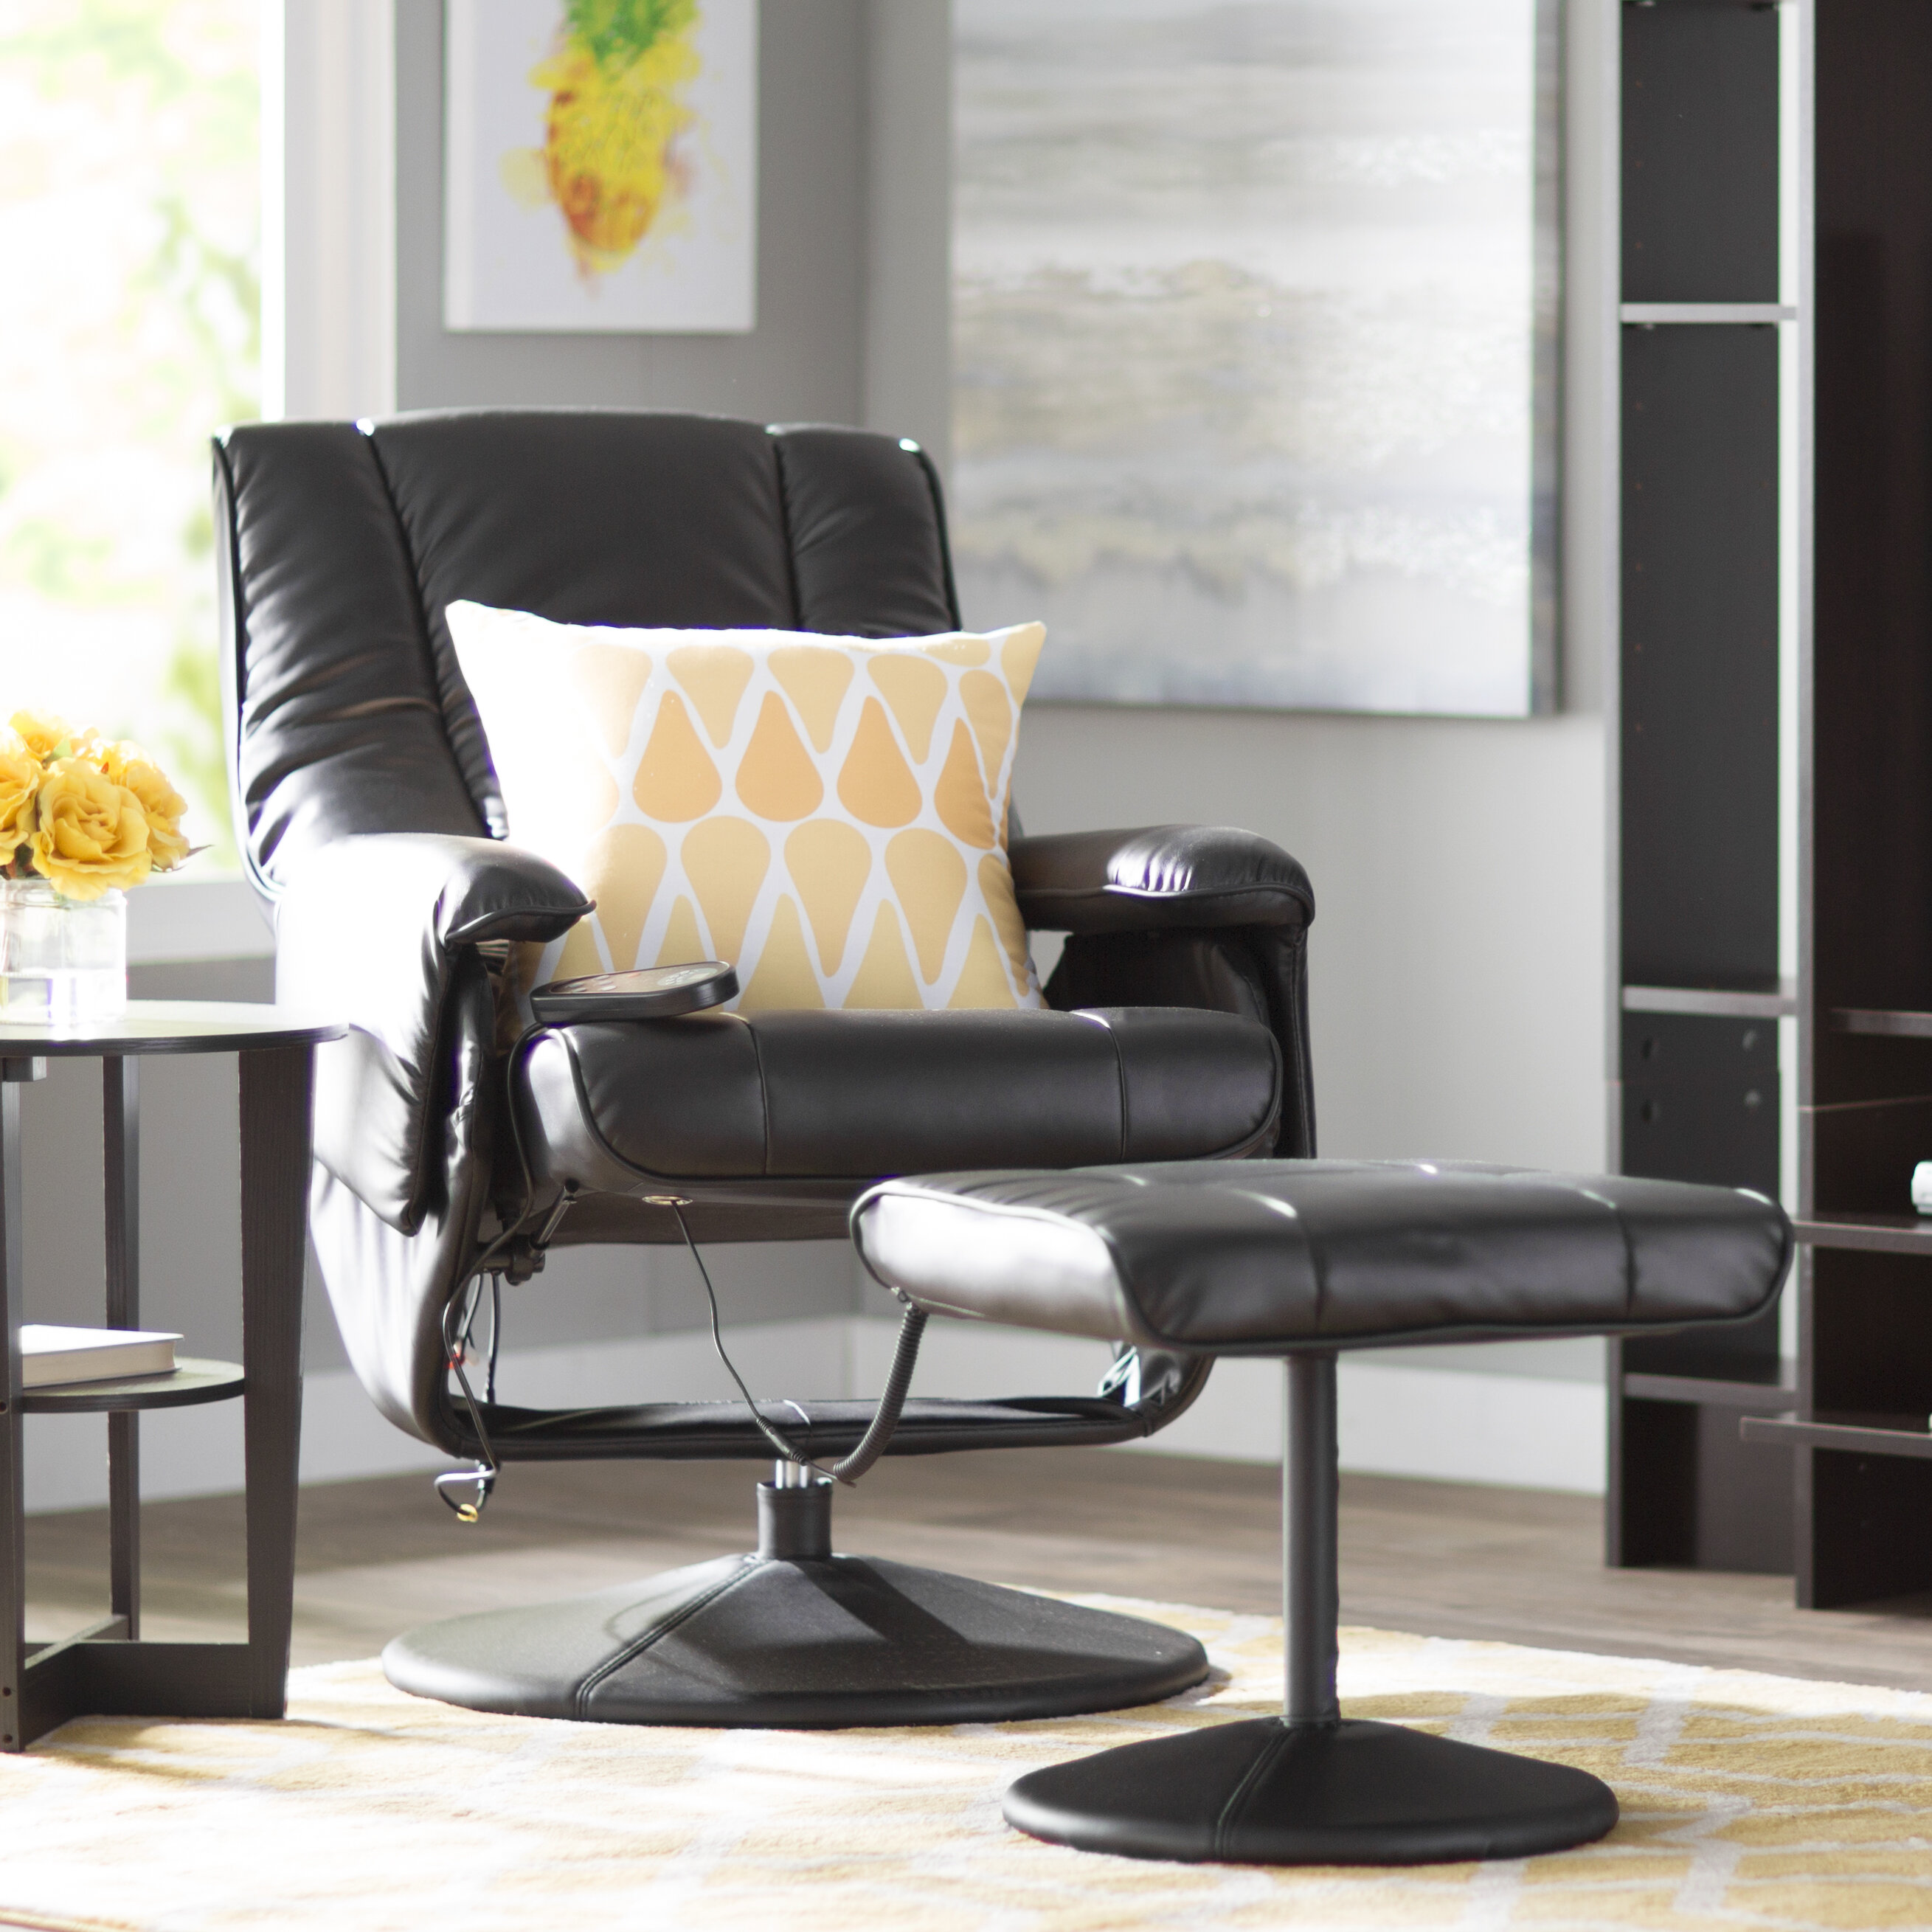 Zipcode Design Reclining Heated Massage Chair With Ottoman Reviews